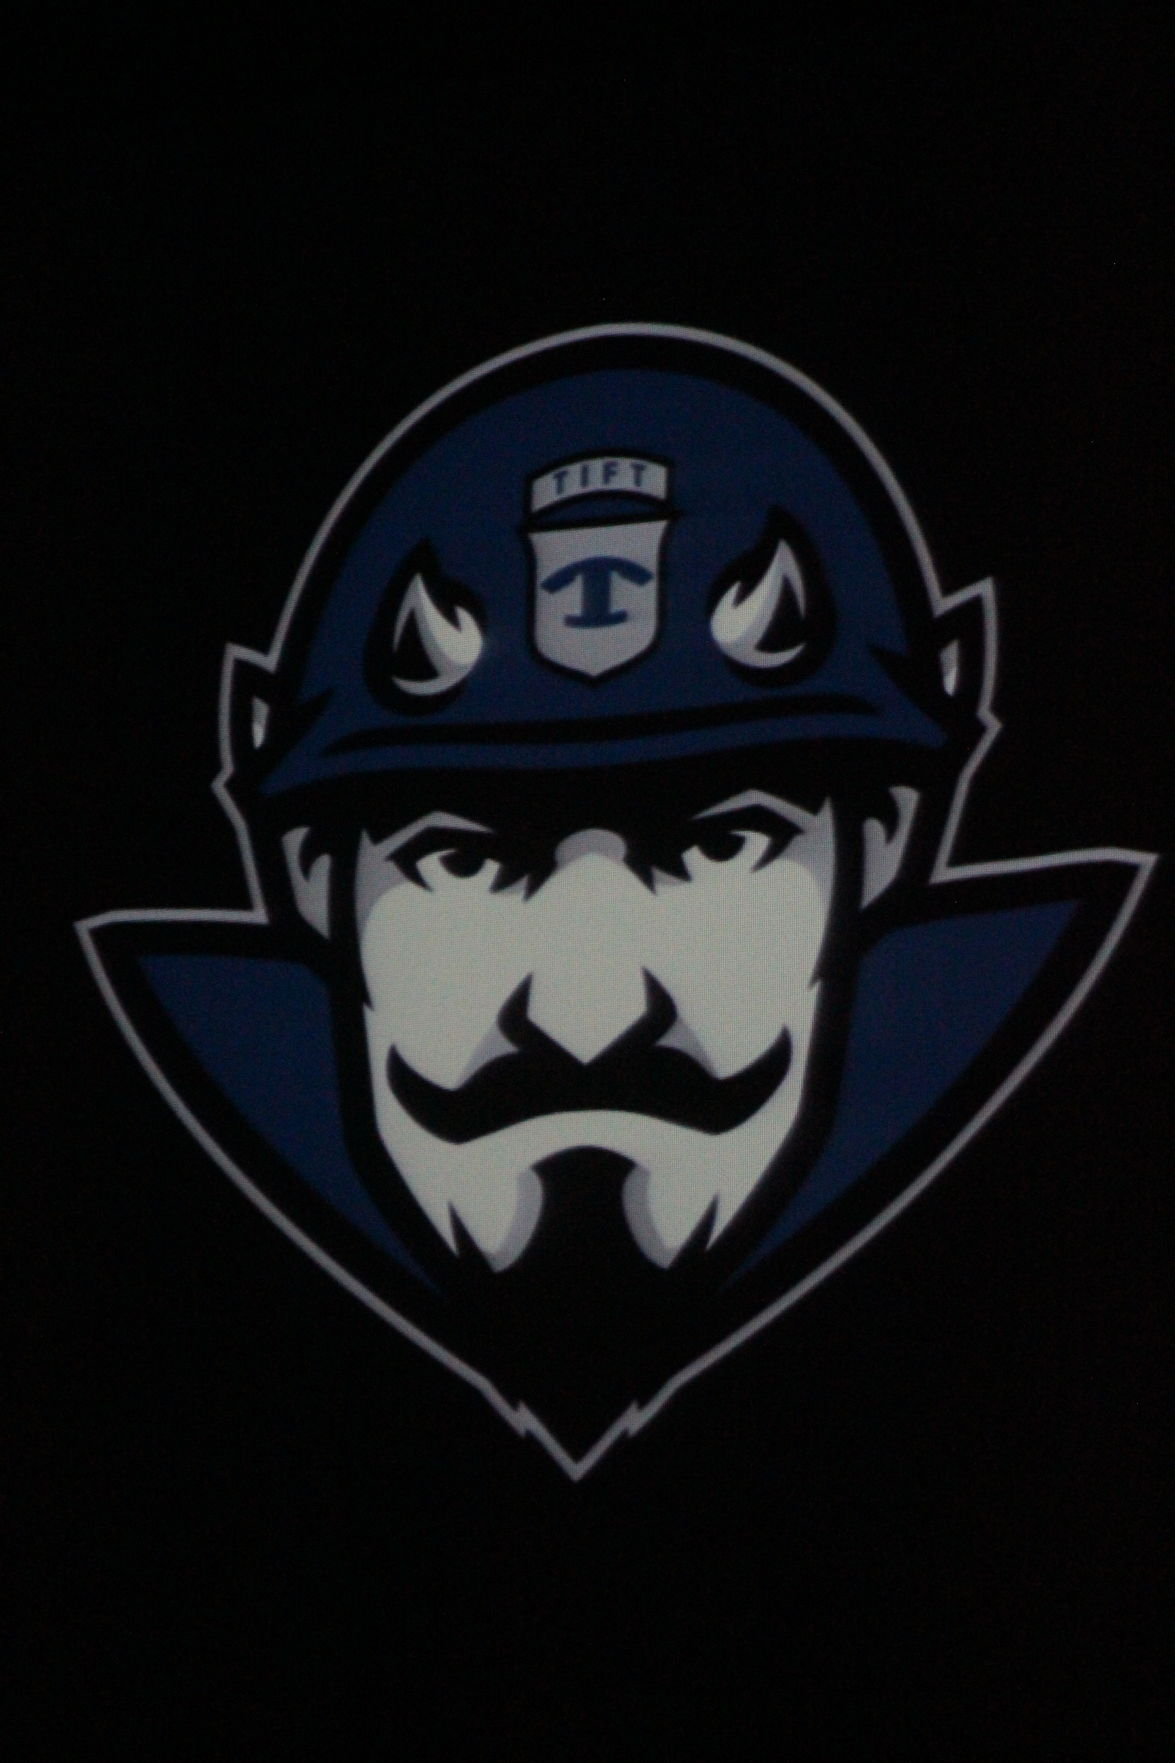 This new mascot image reflects the military history of the Blue Devils name.